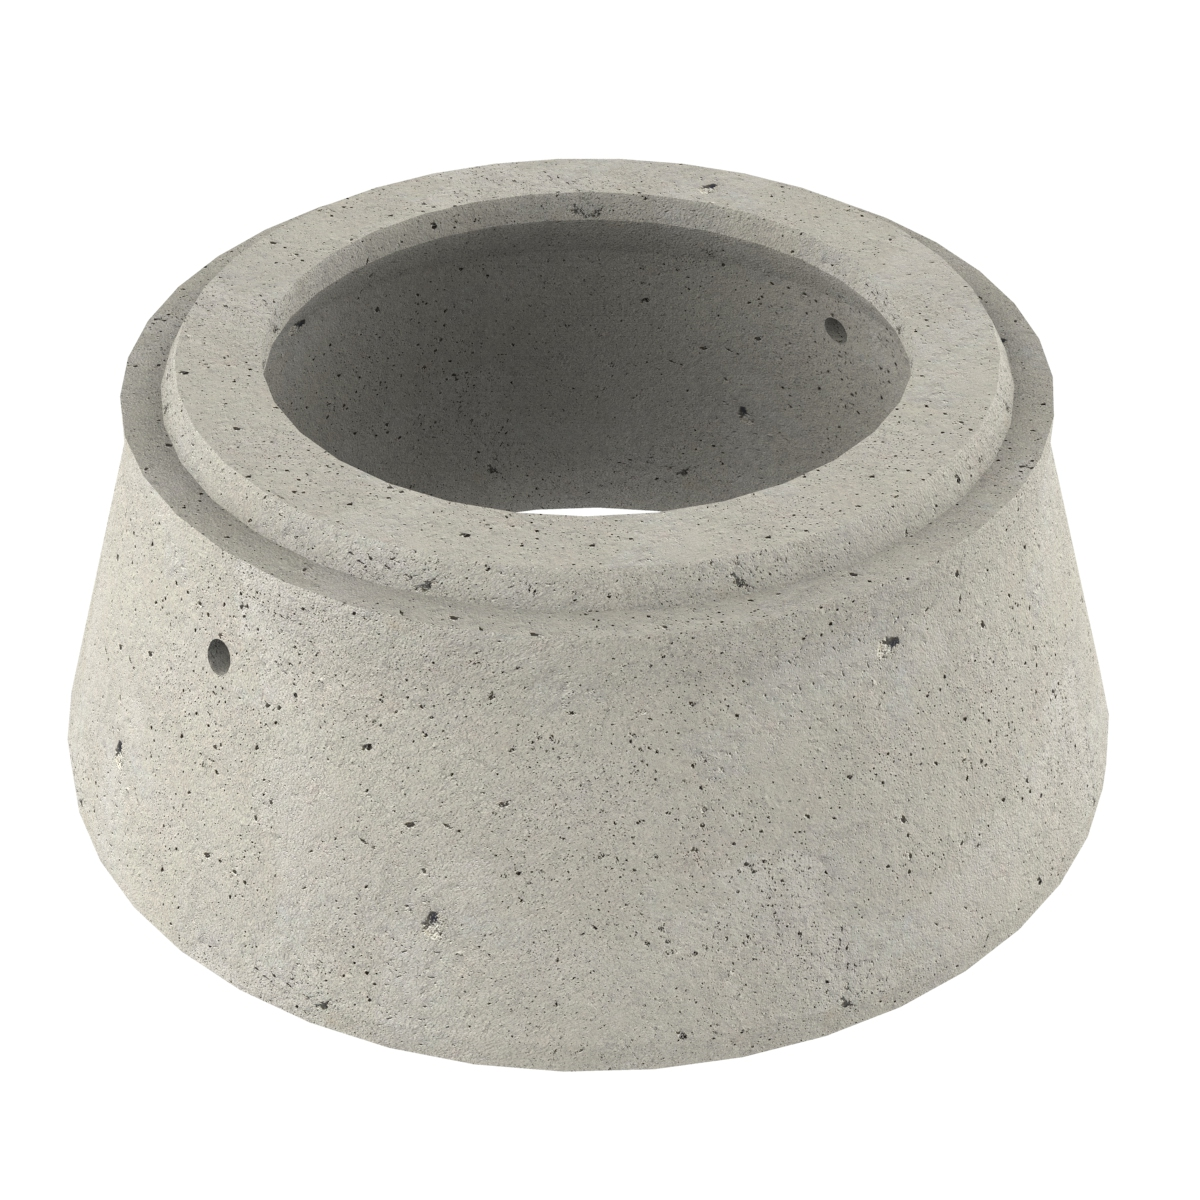 Simetric sone of concrete for wells P-8C 60x80x40